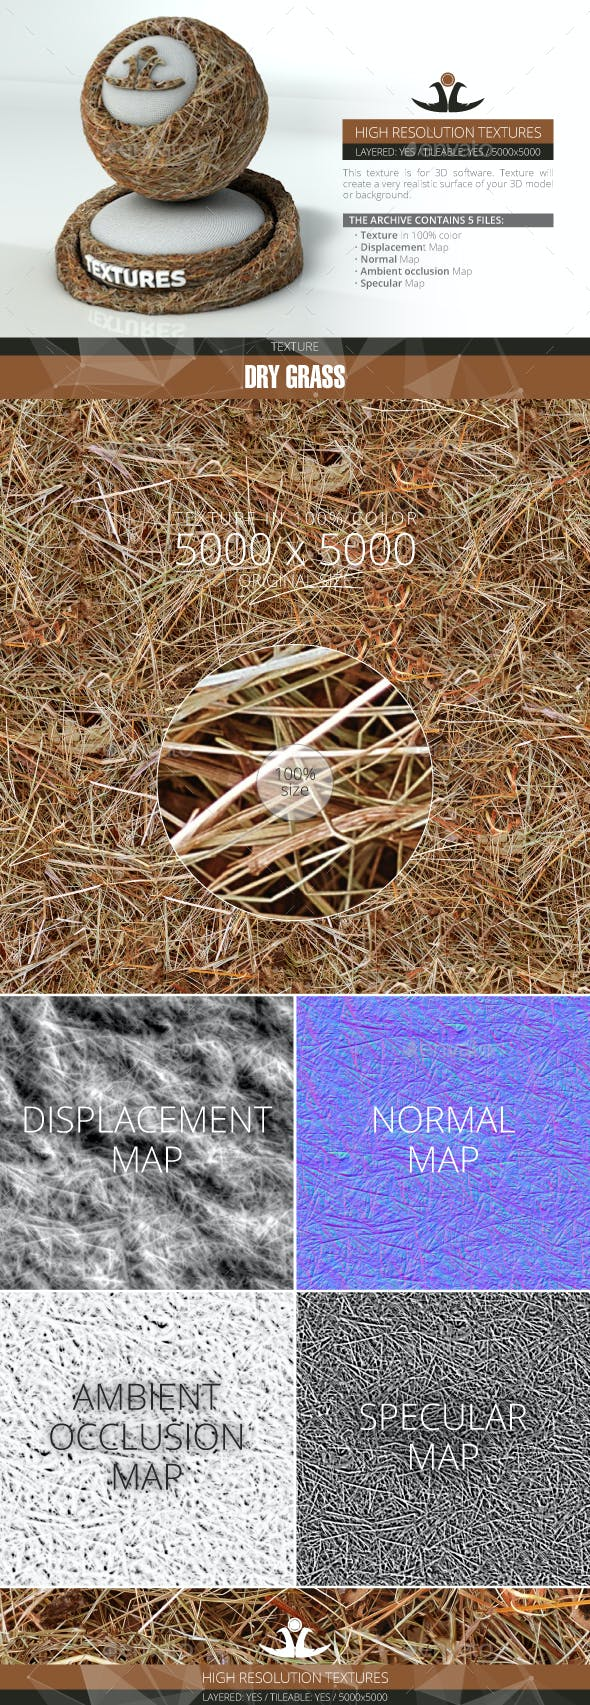 Dry Grass - 3DOcean Item for Sale